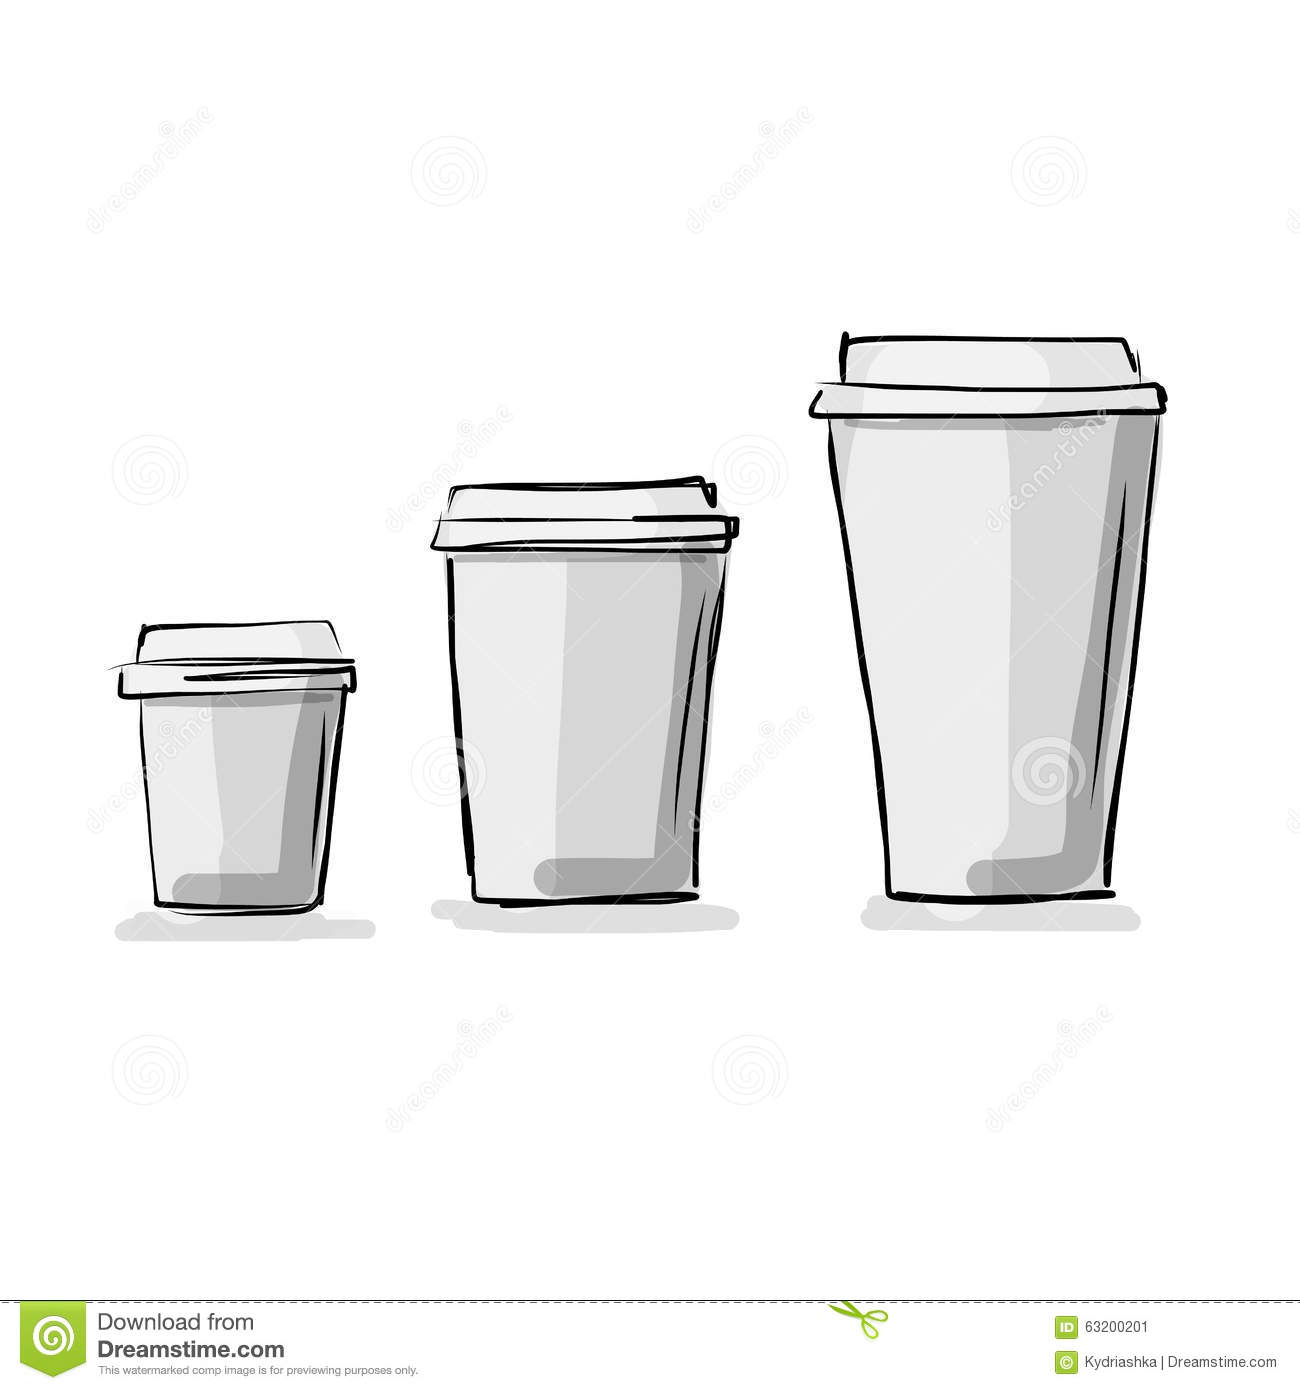 Coffee cup sketch - Royalty Free Vector Download Take Away Coffee Cups Sketch